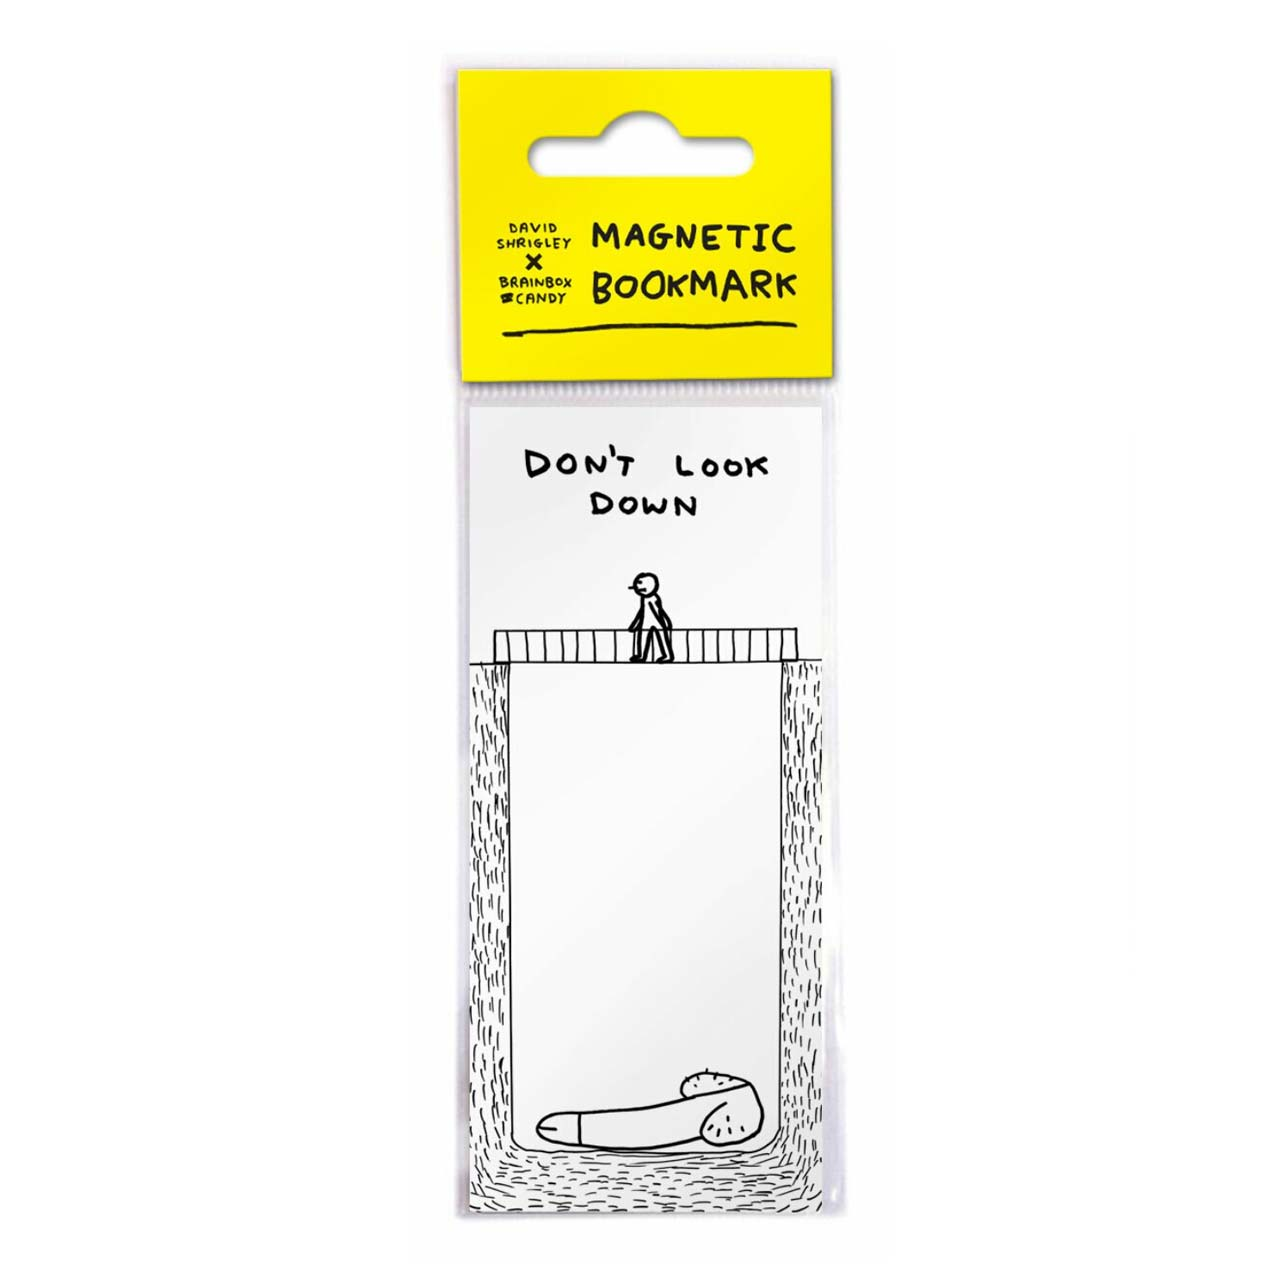 Don't Look Down Magnetic Bookmark